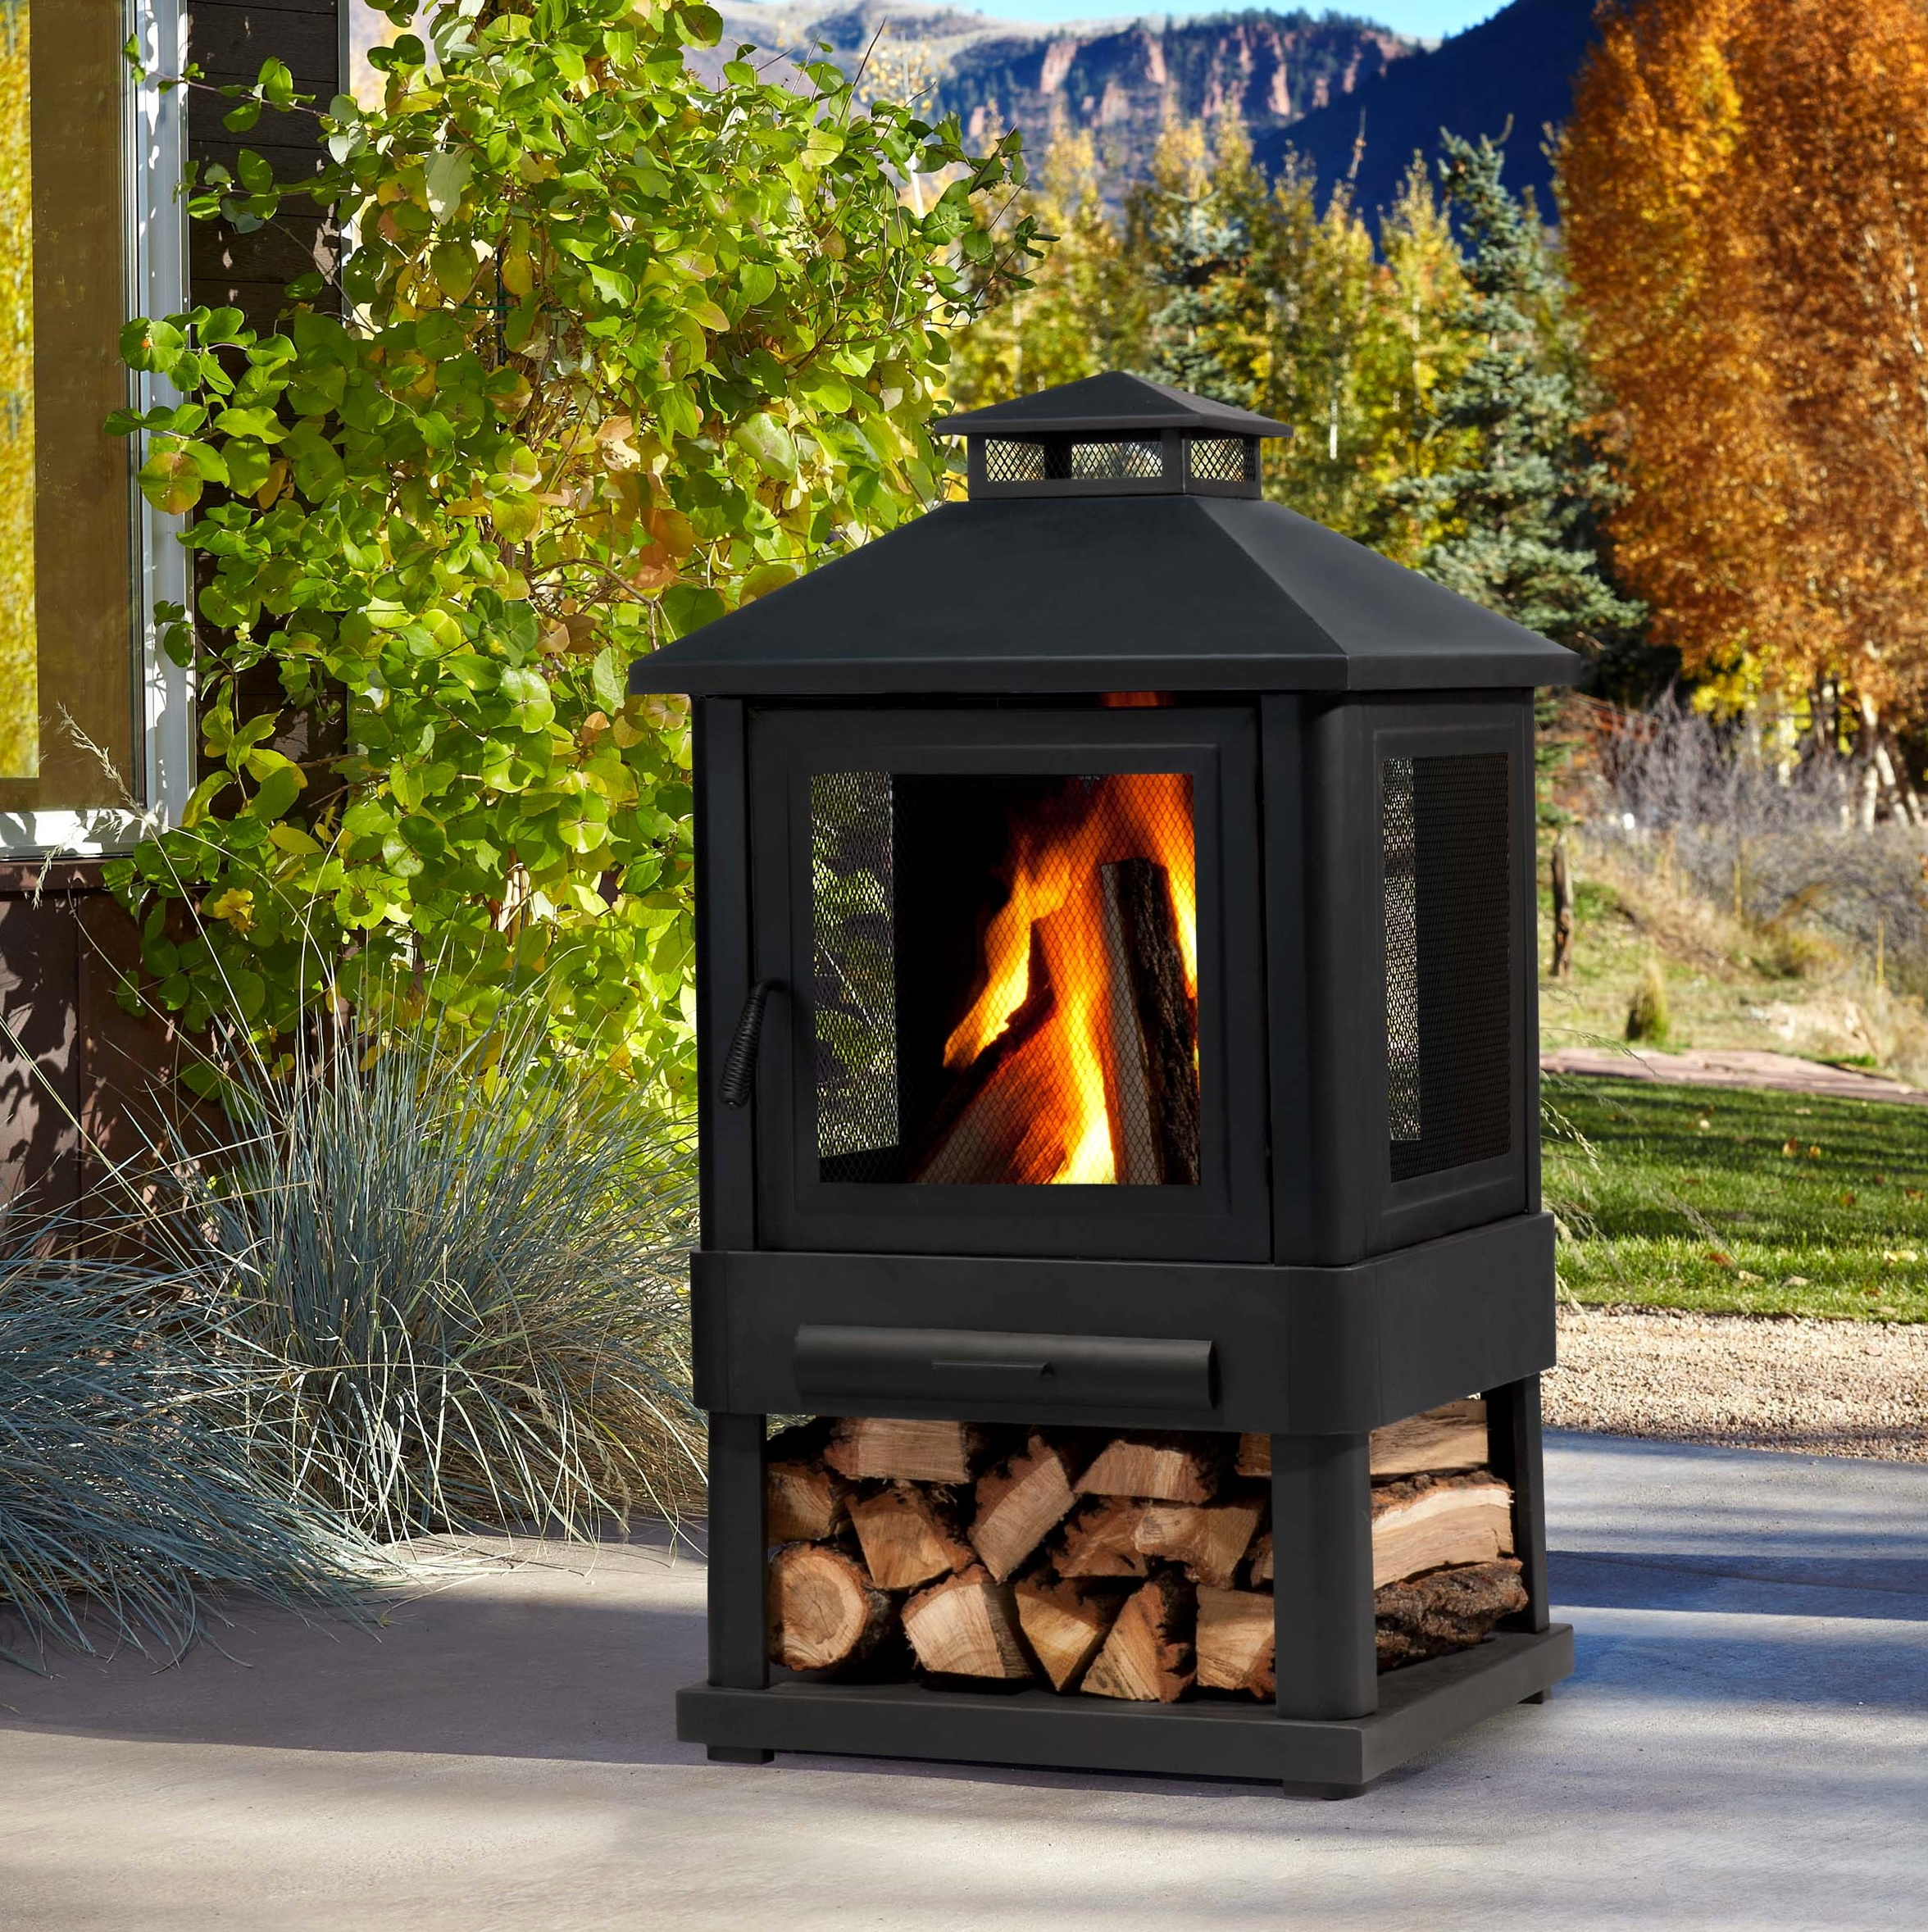 Portable Outdoor Wood Burning Fireplace Home Design Ideas